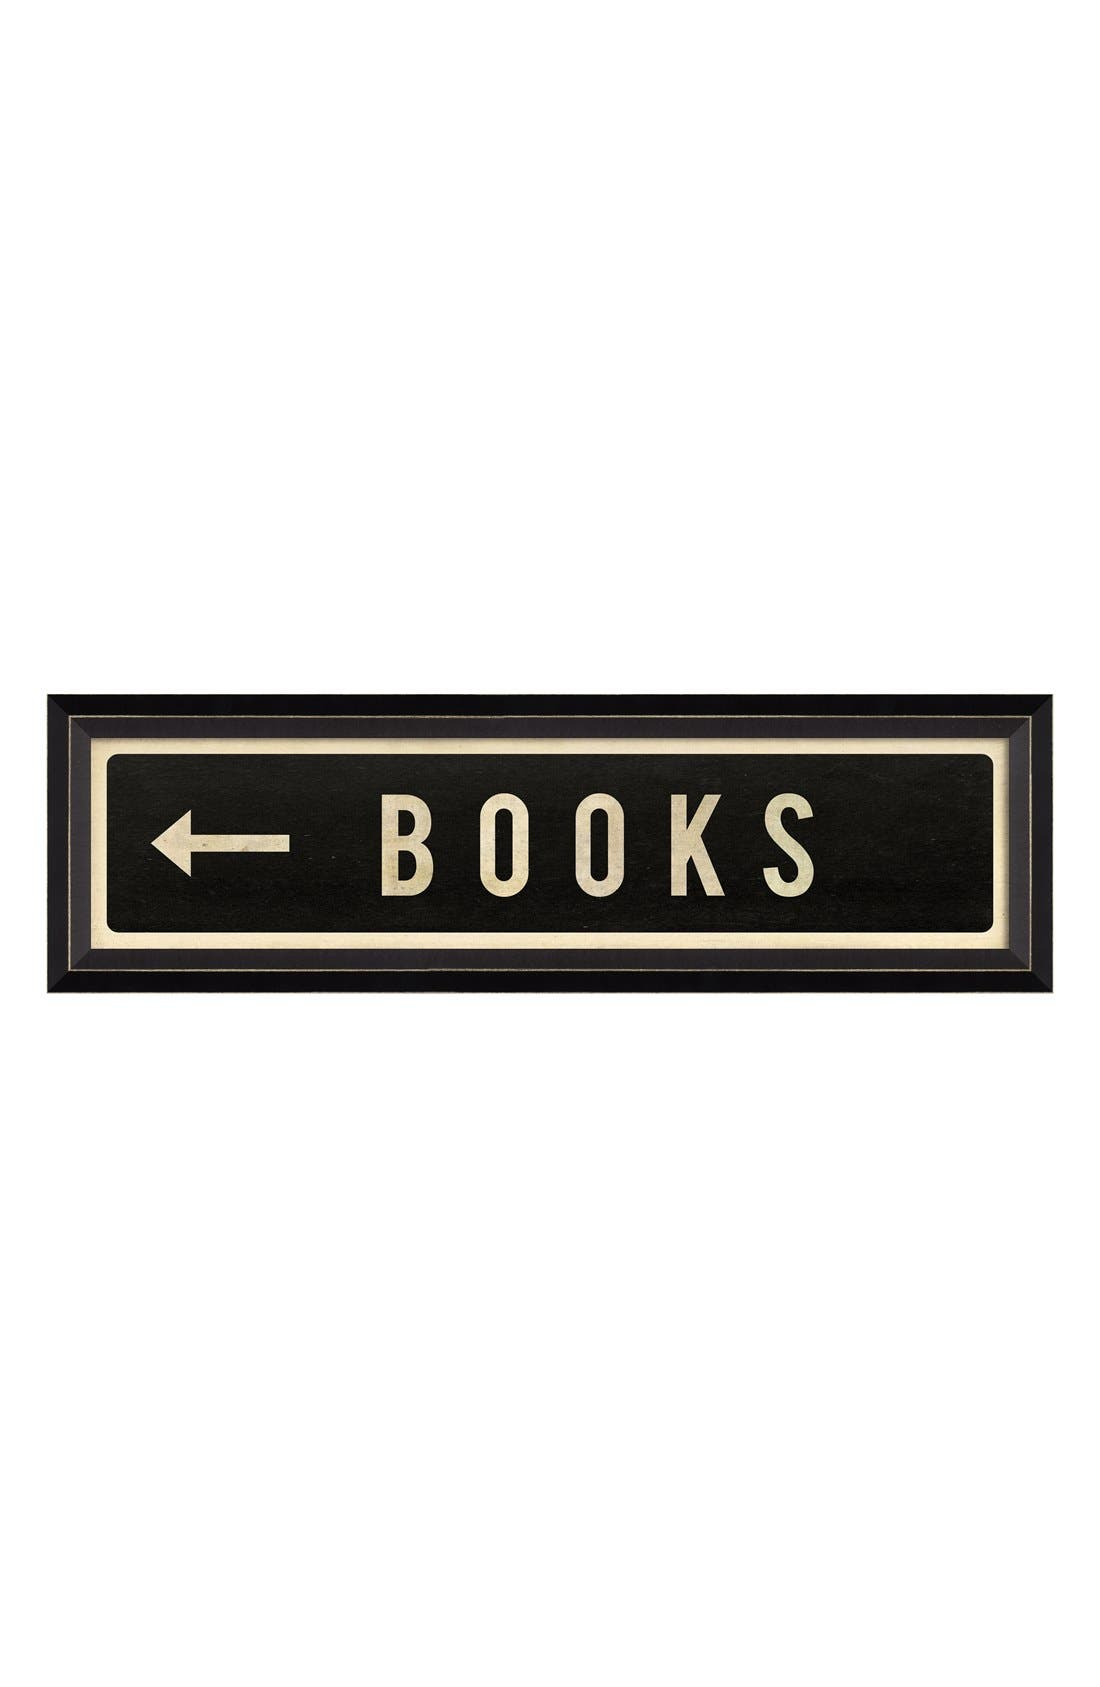 Main Image - Spicher and Company 'Books' Vintage Look Sign Artwork